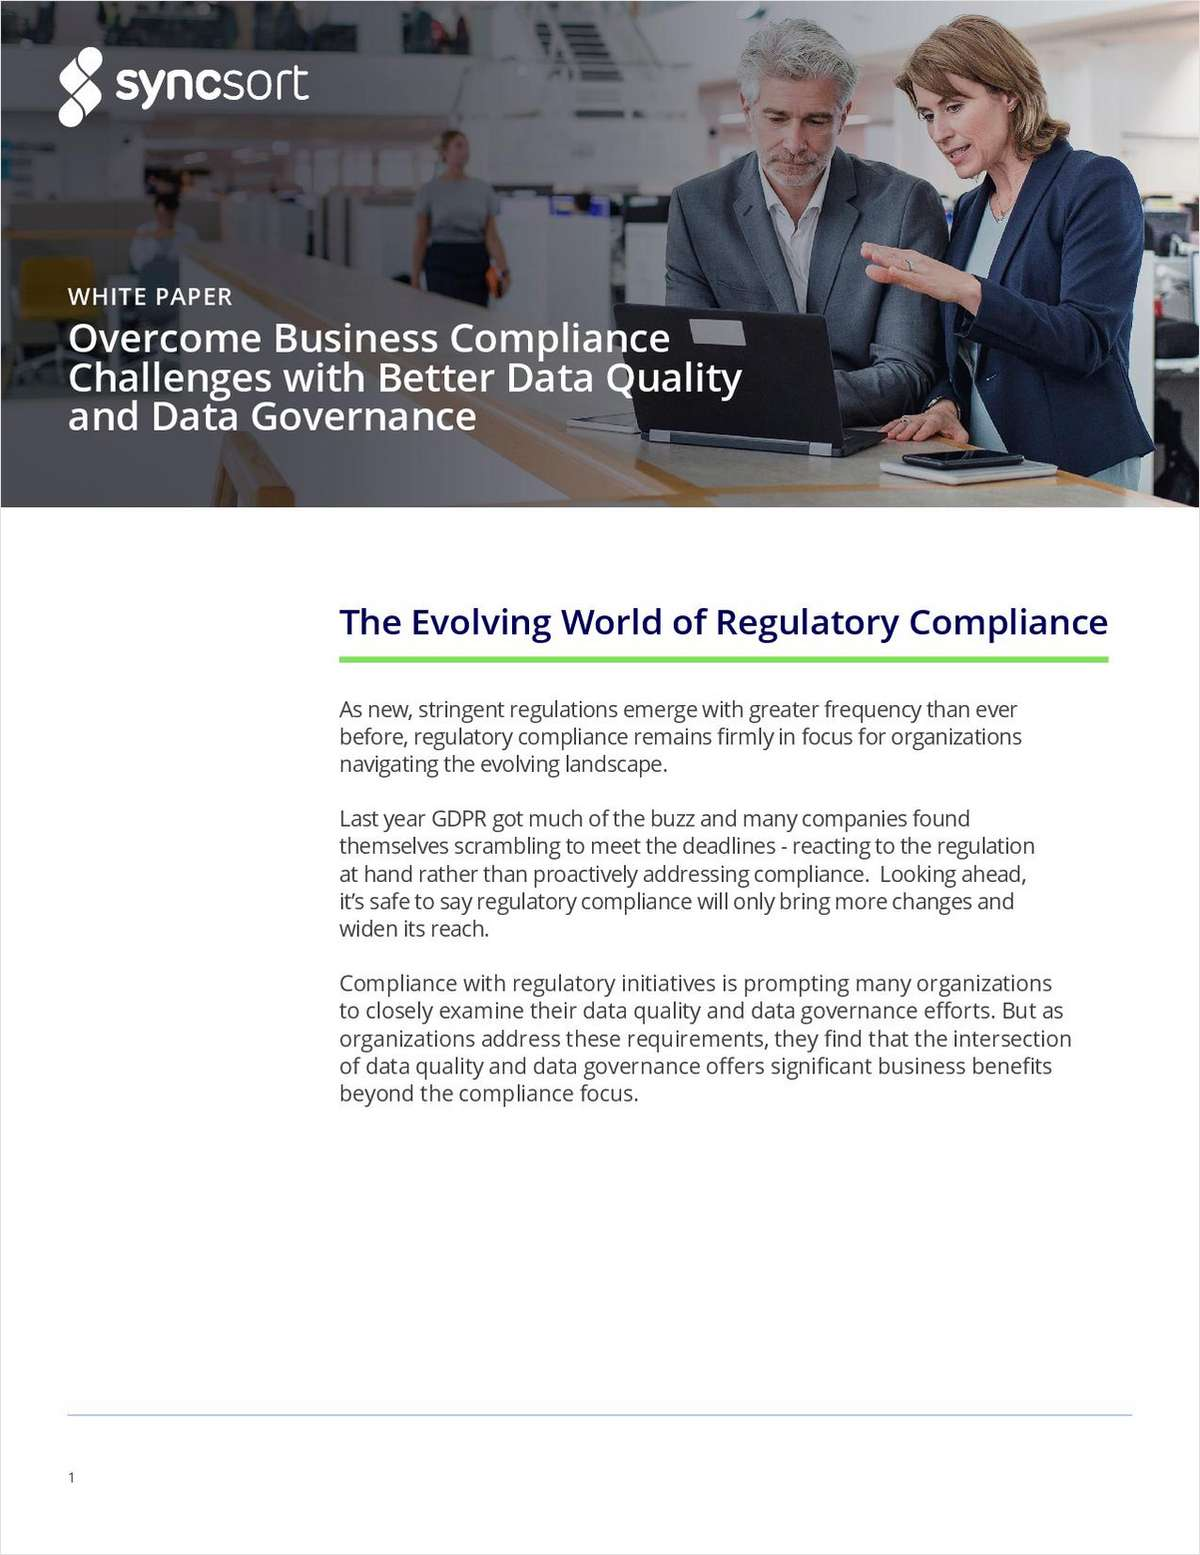 Overcome Business Compliance Challenges with Better Data Quality and Data Governance